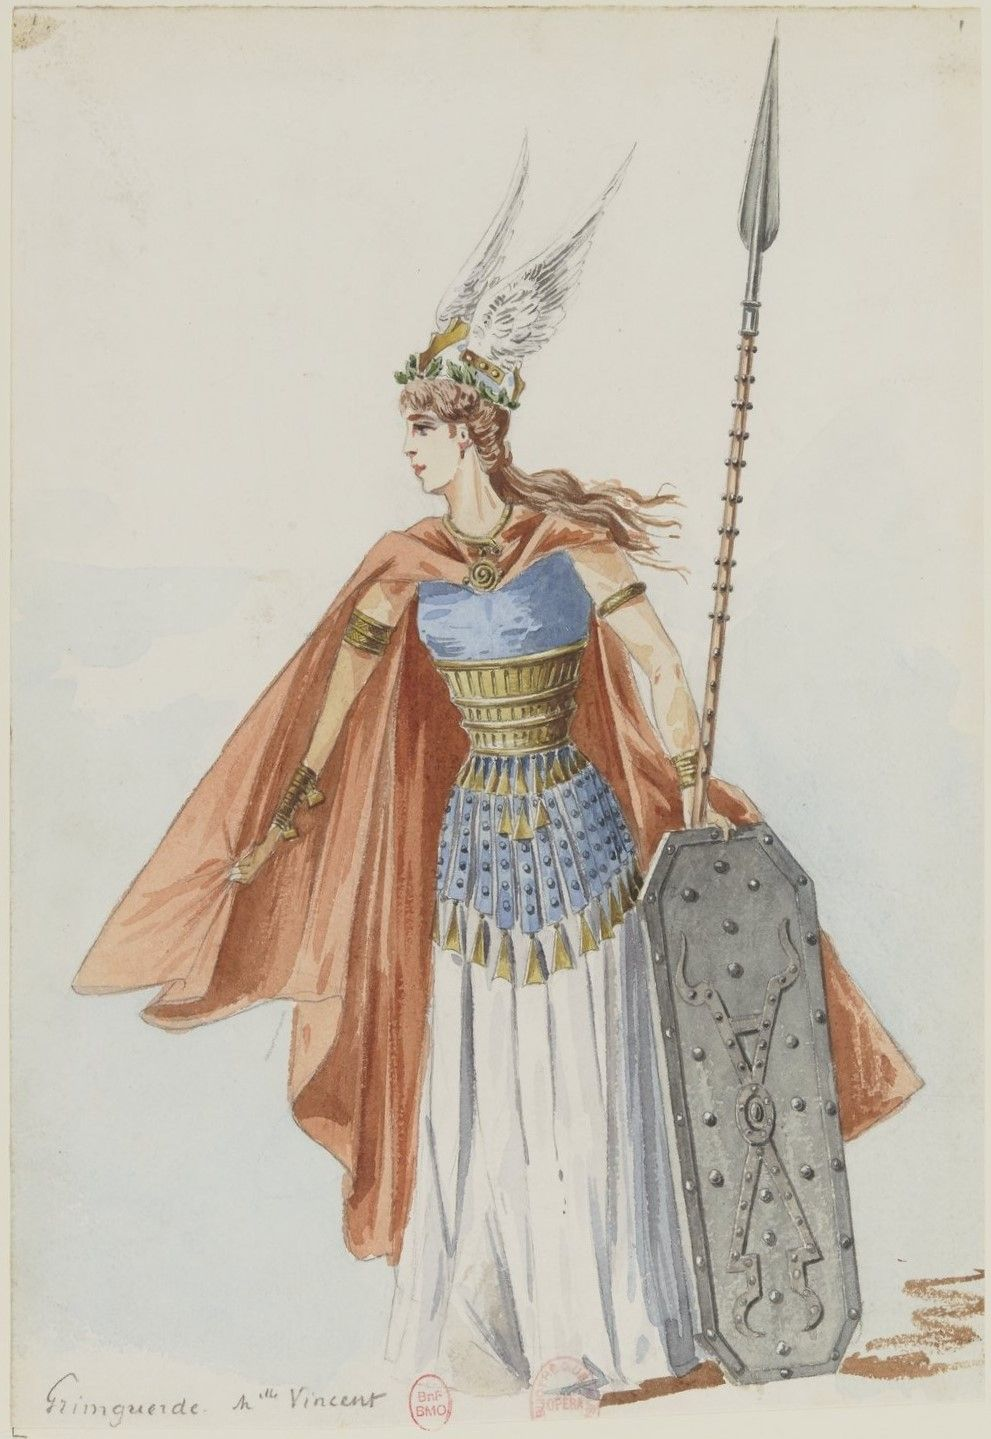 Costume Design 1893 By Charles Bianchini 1860 1905 For Grimgerde In Die Walkure 1856 By Richard Wagner 1813 1883 Costume Valkyrie Walkyrie Costume